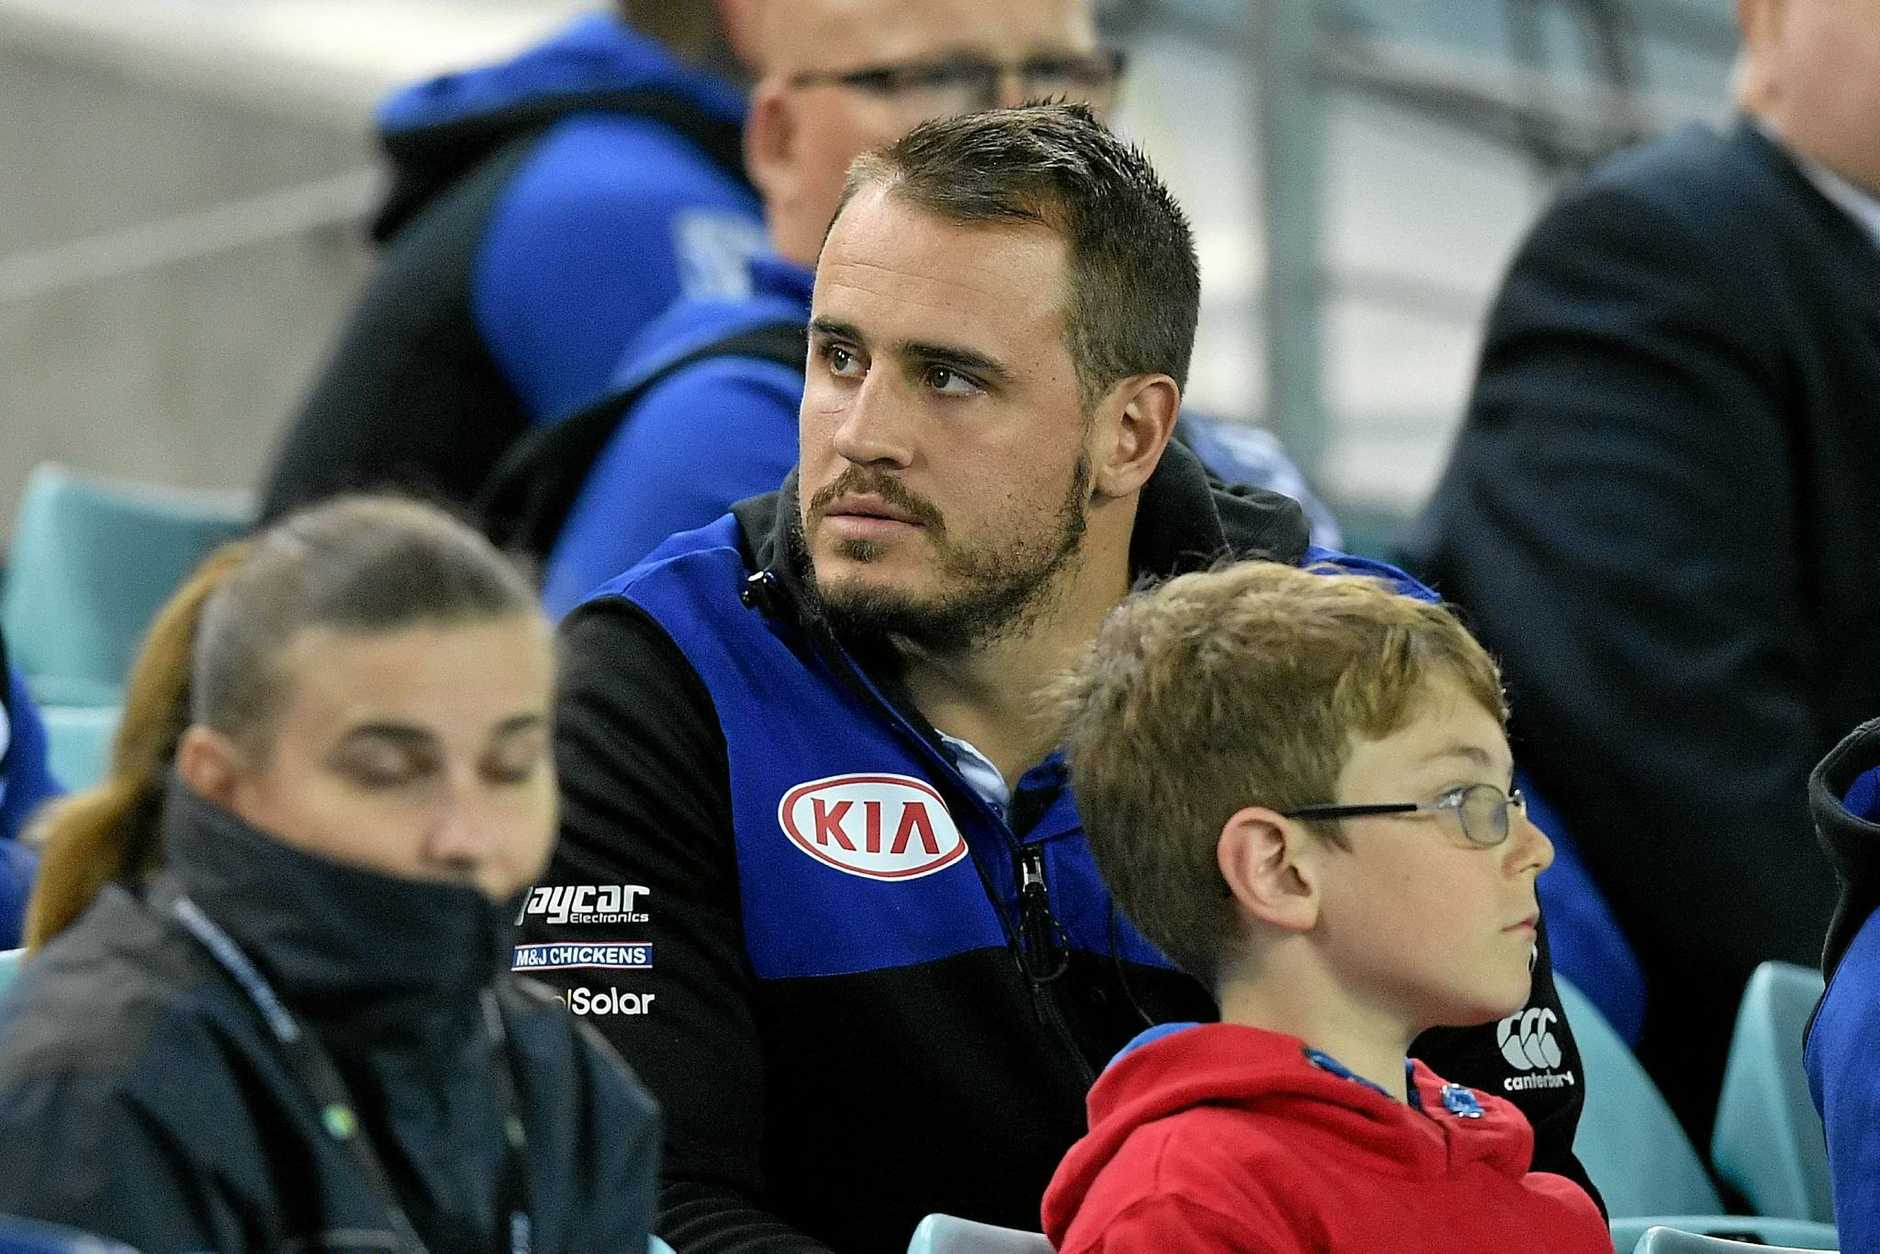 Josh Reynolds watches on from the stands in round 10 after injuring his hamstring.